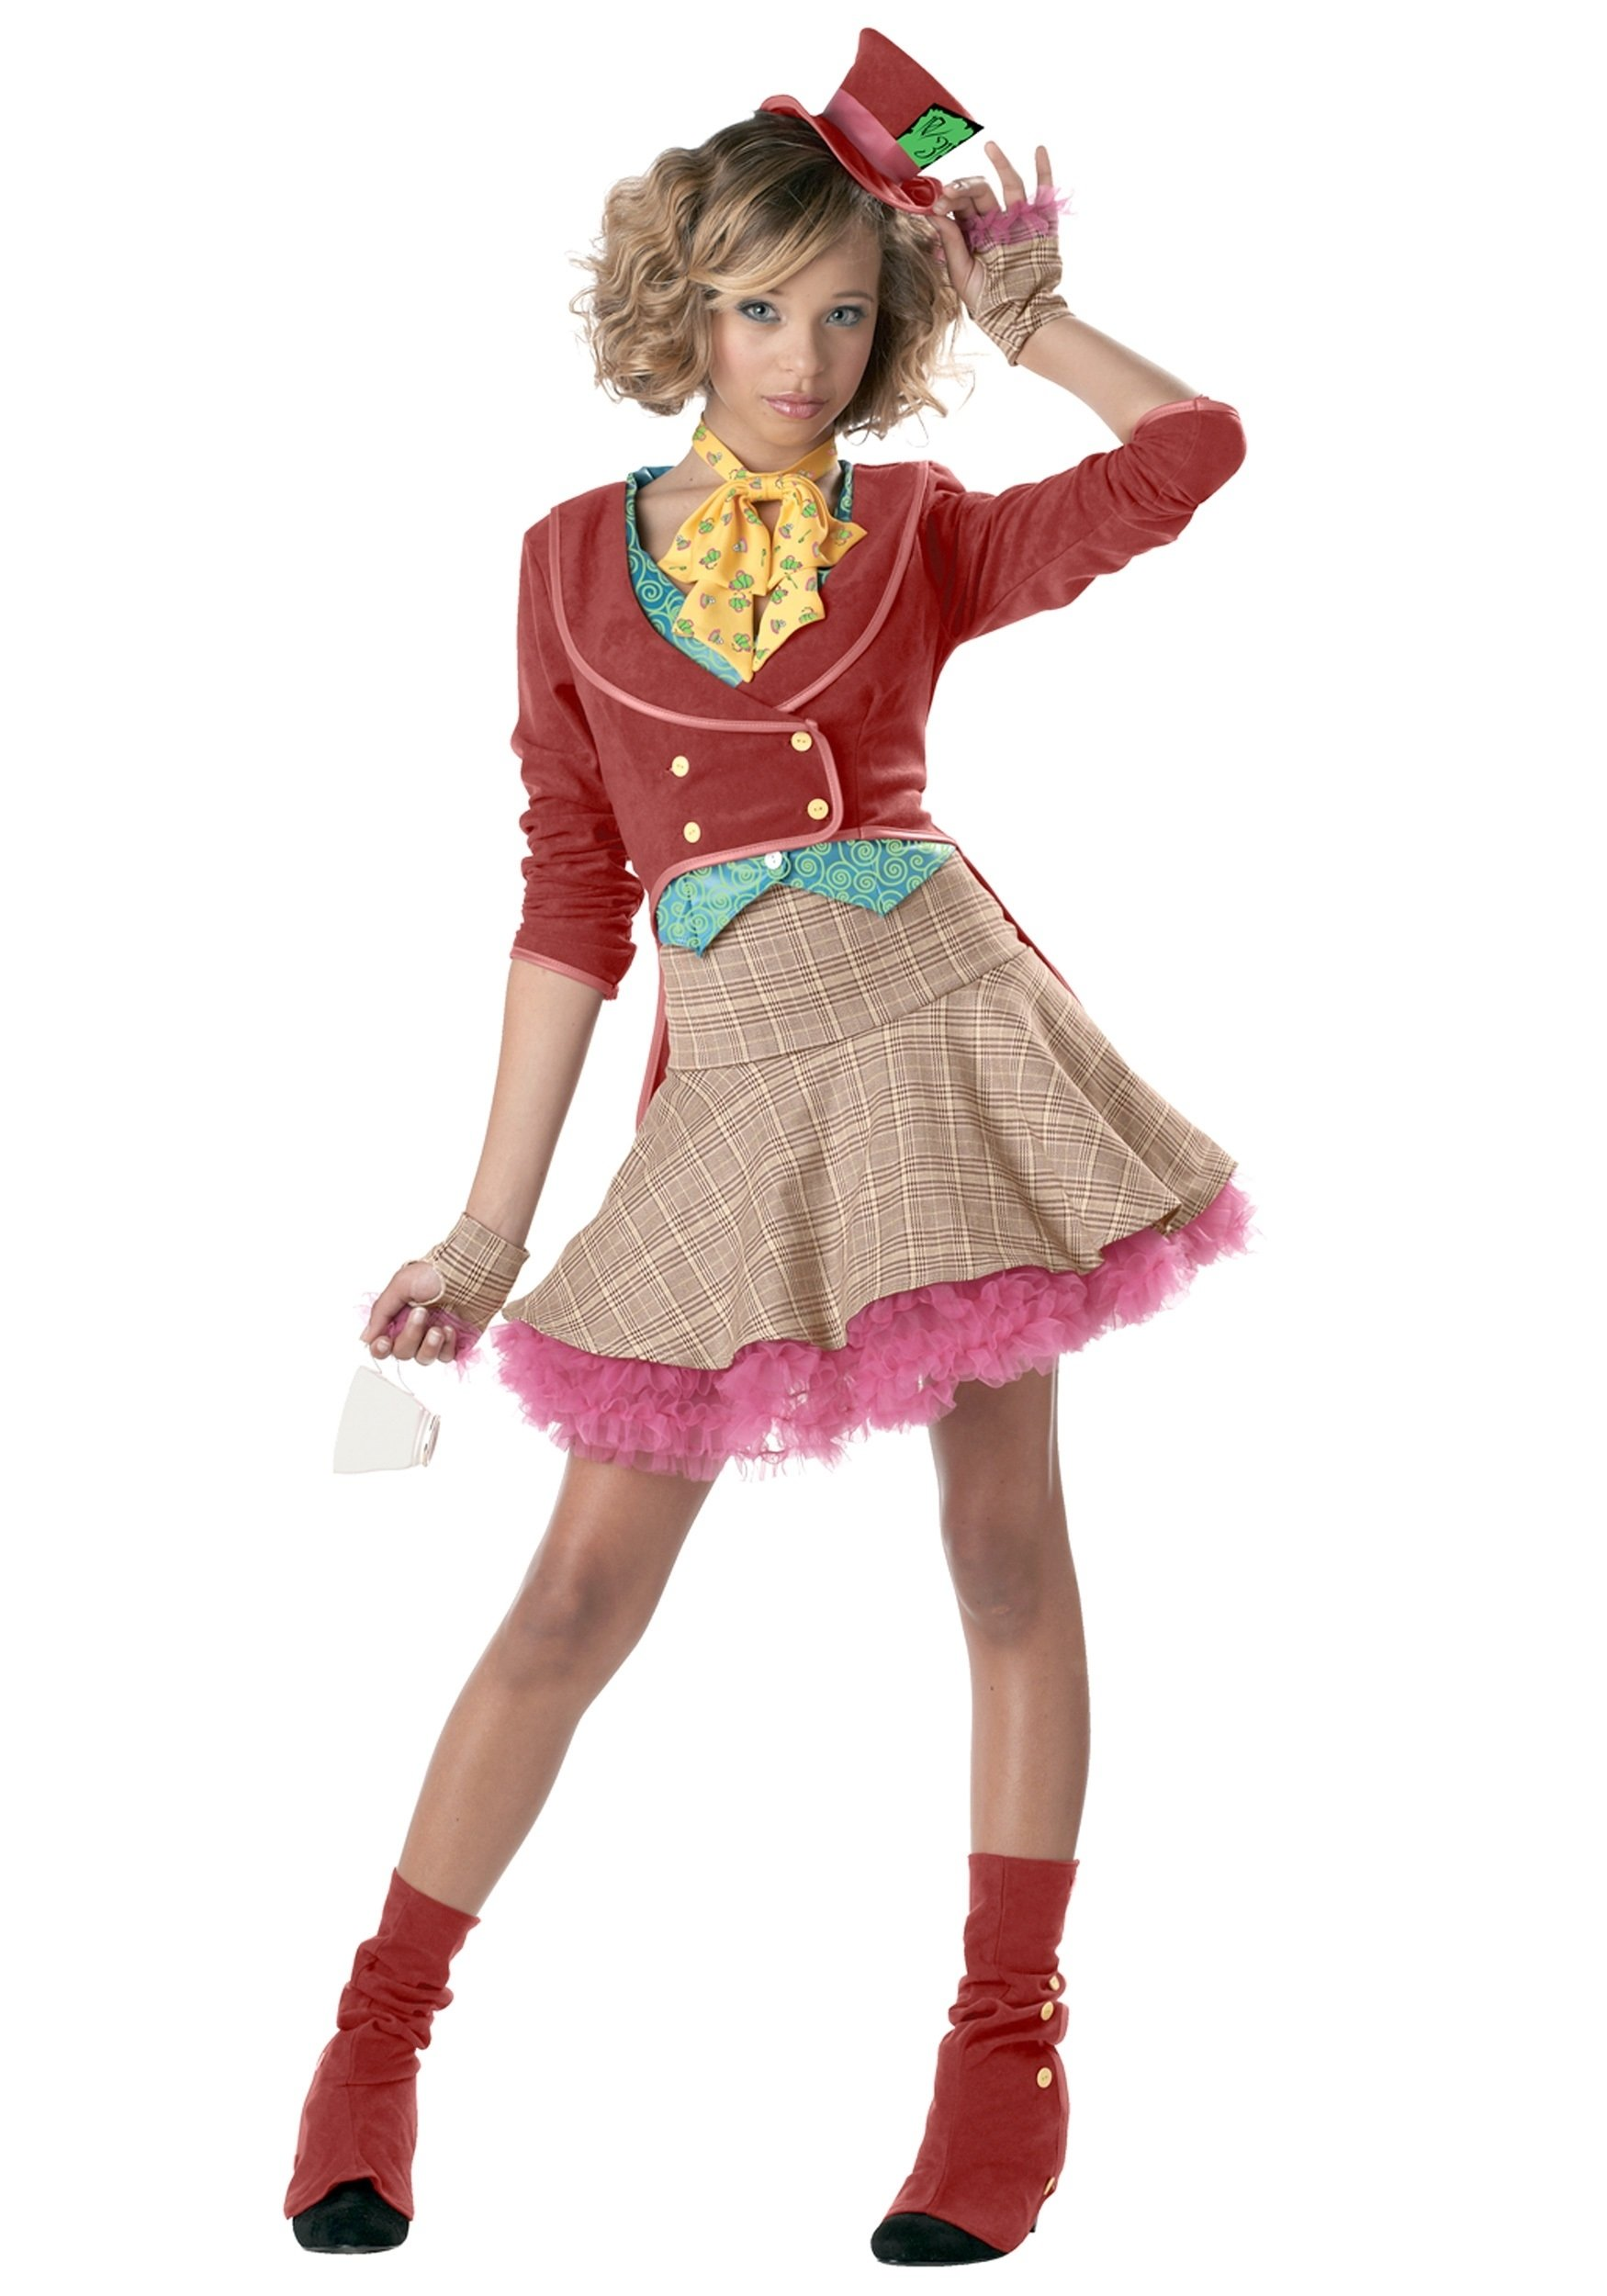 10 Stylish Costume Ideas For Tween Girls teen girls mad hatter costume 6 2020